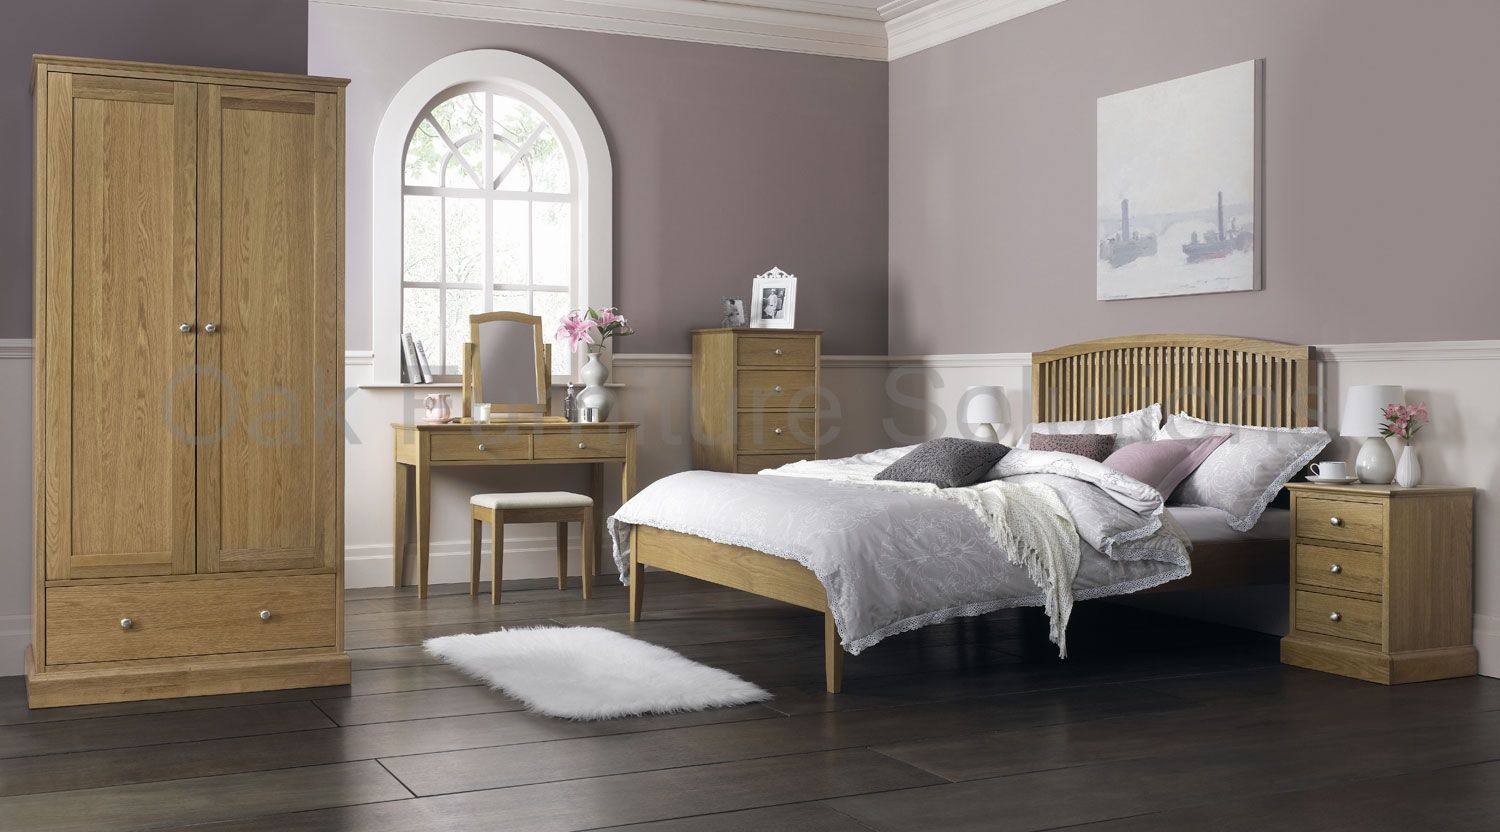 Bedroom Ideas Oak Furniture oak furniture light oak bedroom set | room colour ideas